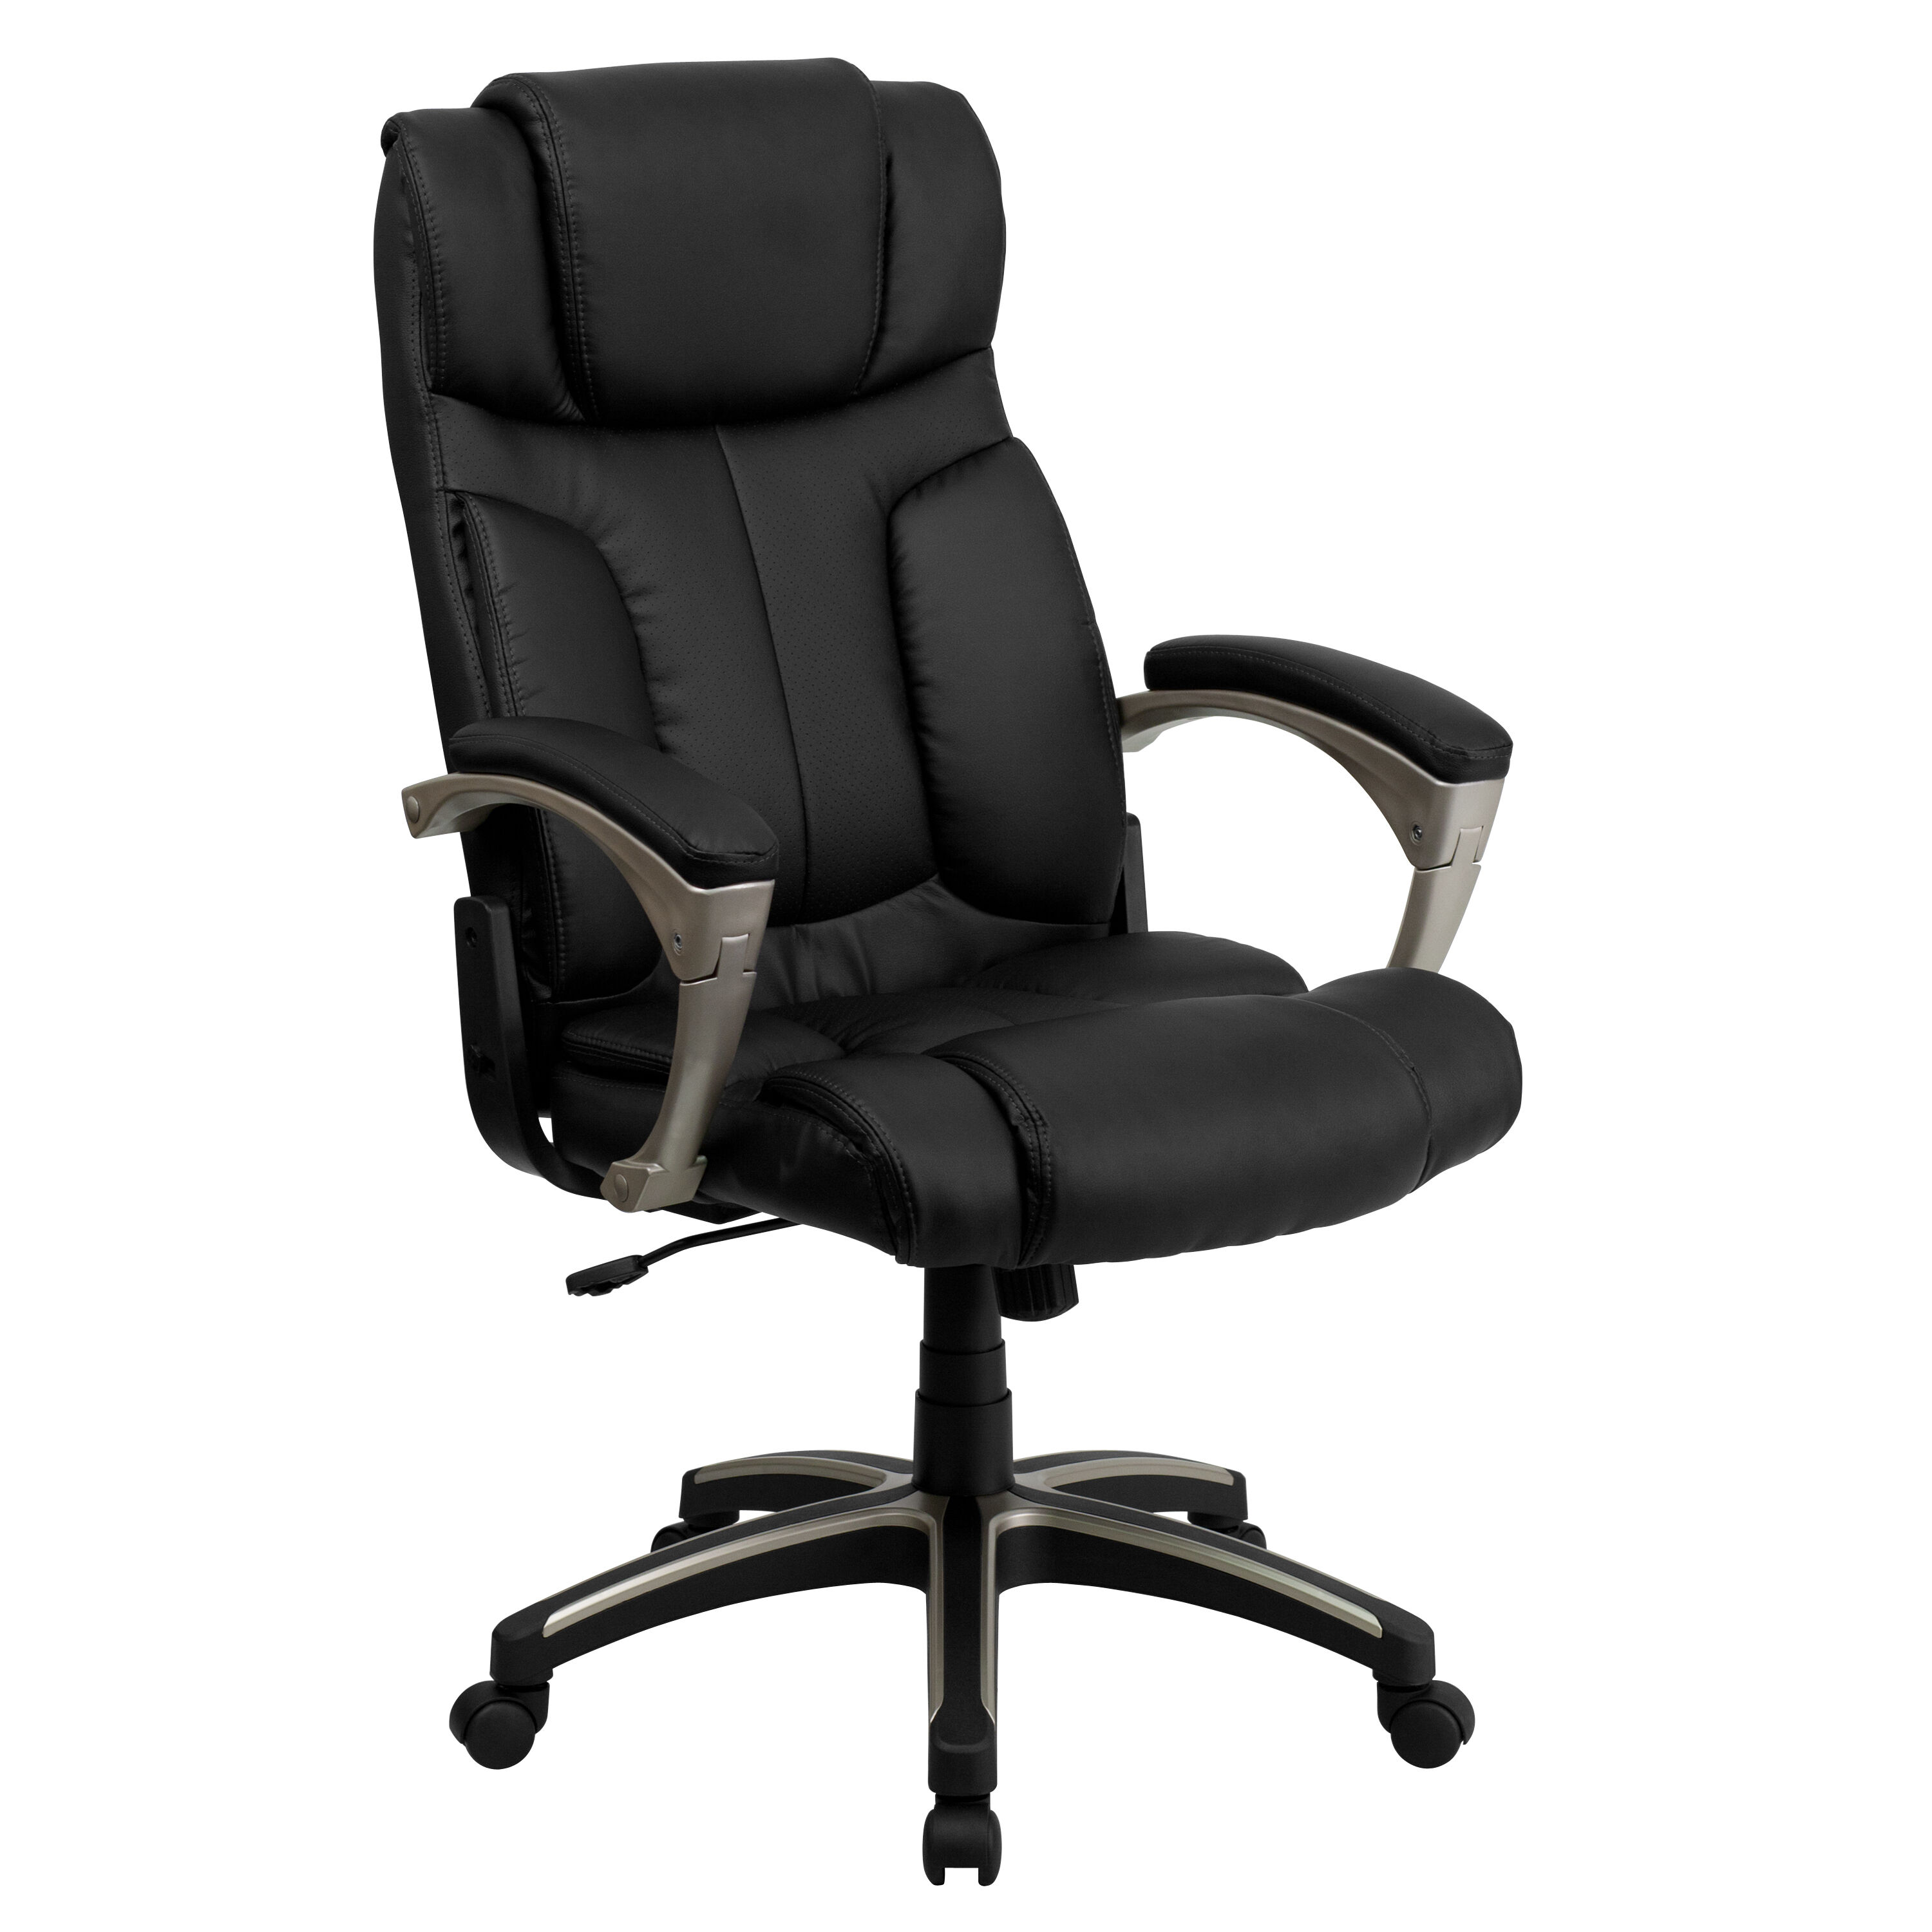 ... Our High Back Folding Black Leather Executive Swivel Chair With Arms Is  On Sale Now.